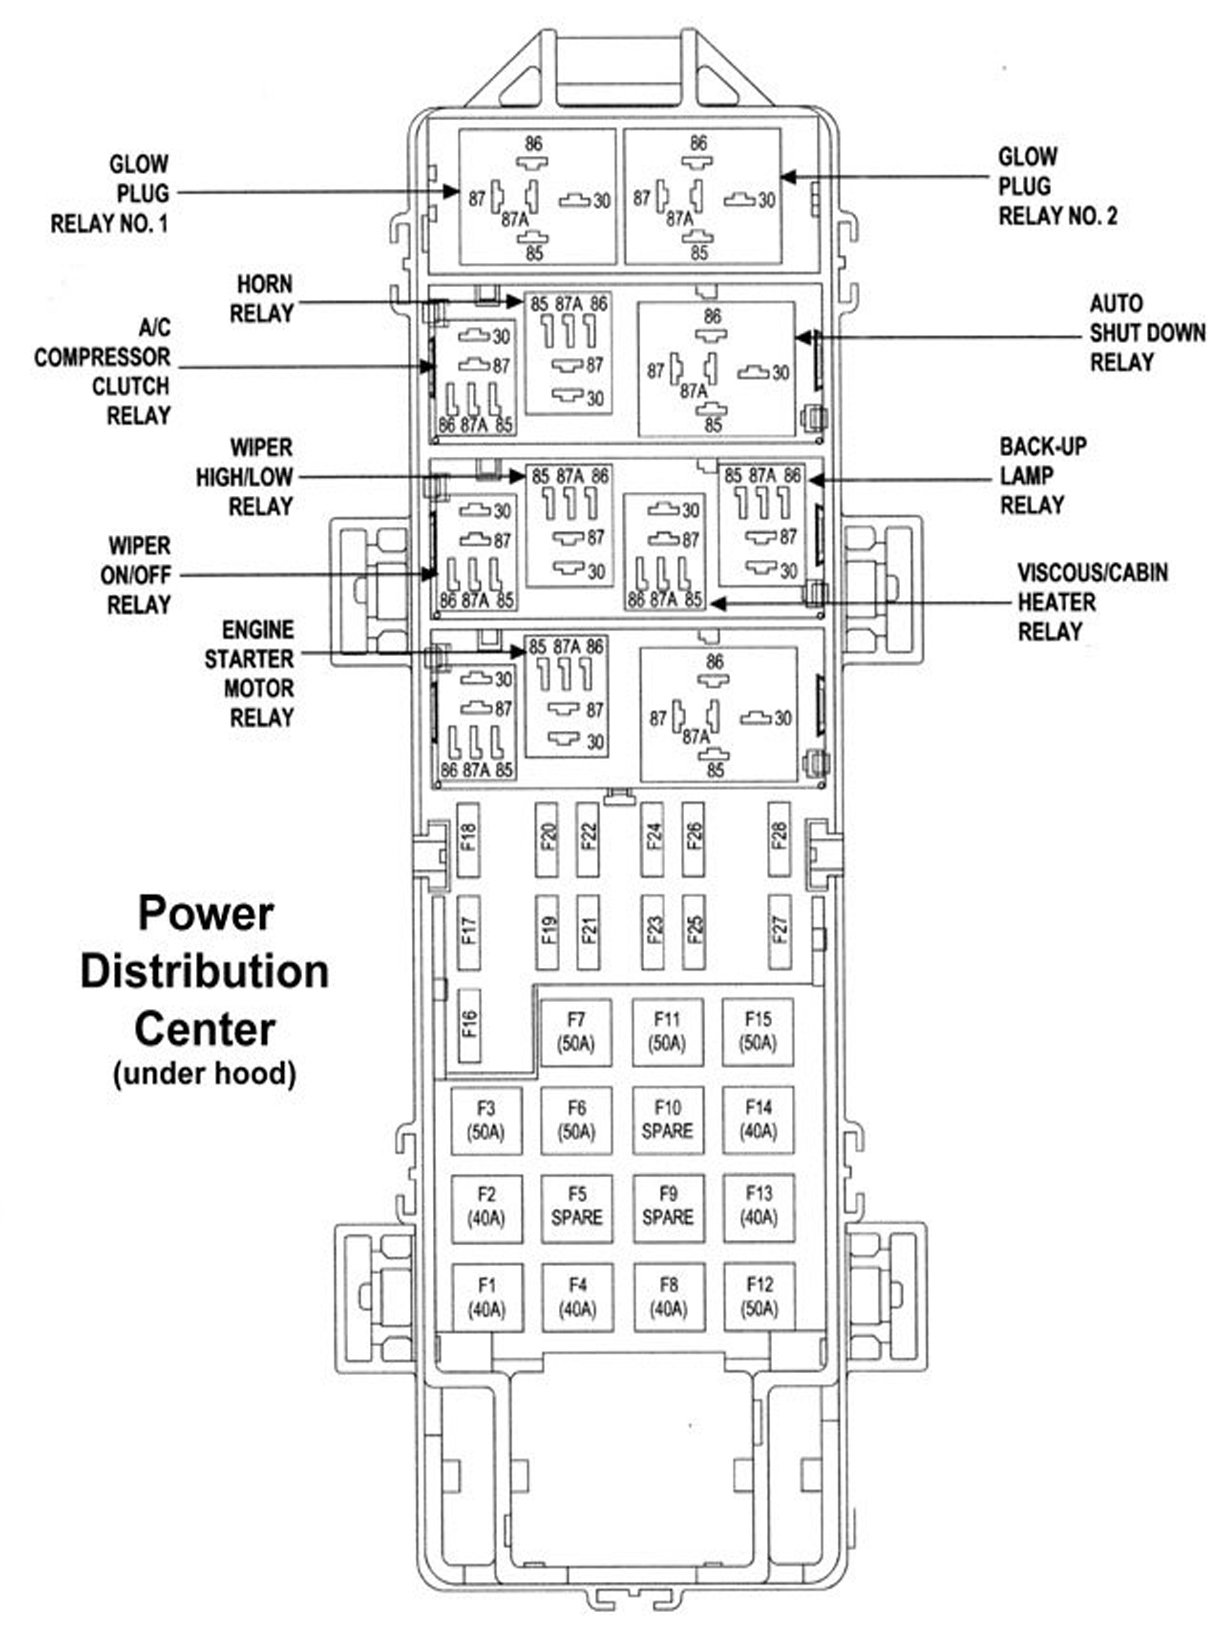 2004 Jeep Grand Cherokee Power Window Wiring Diagram